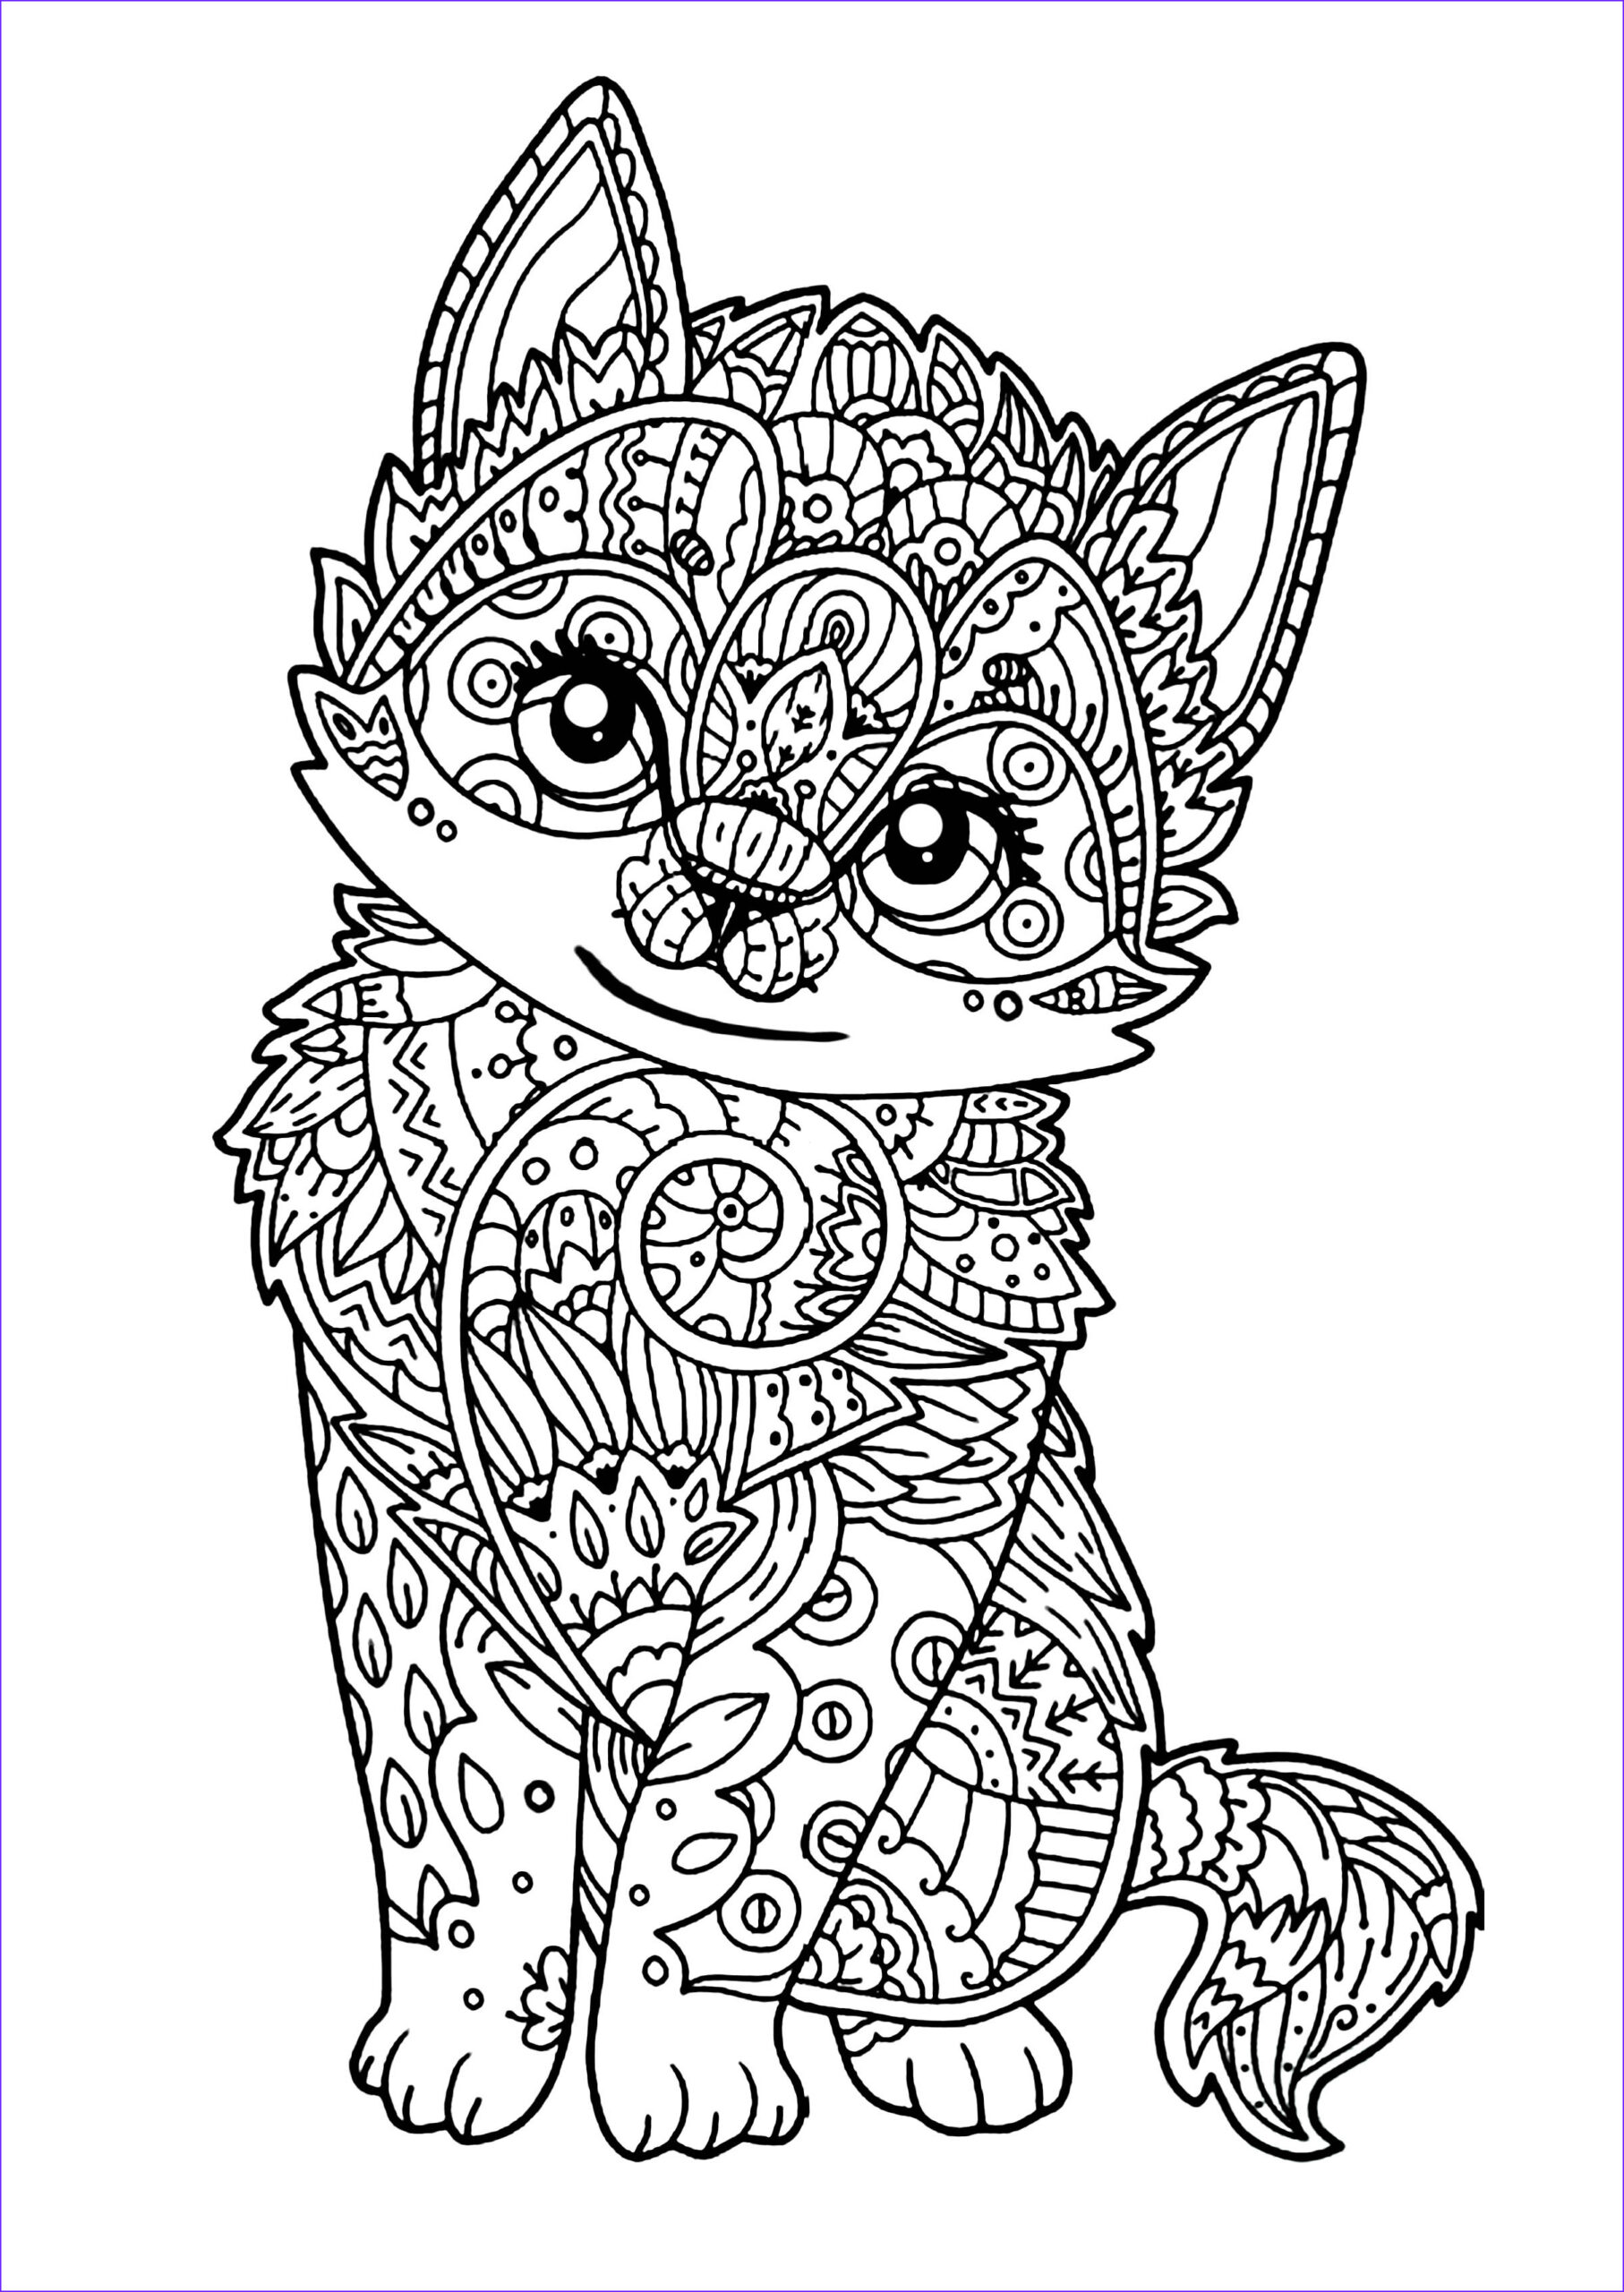 Coloring Pages Of Kittens Awesome Collection Cute Kitten Cats Adult Coloring Pages